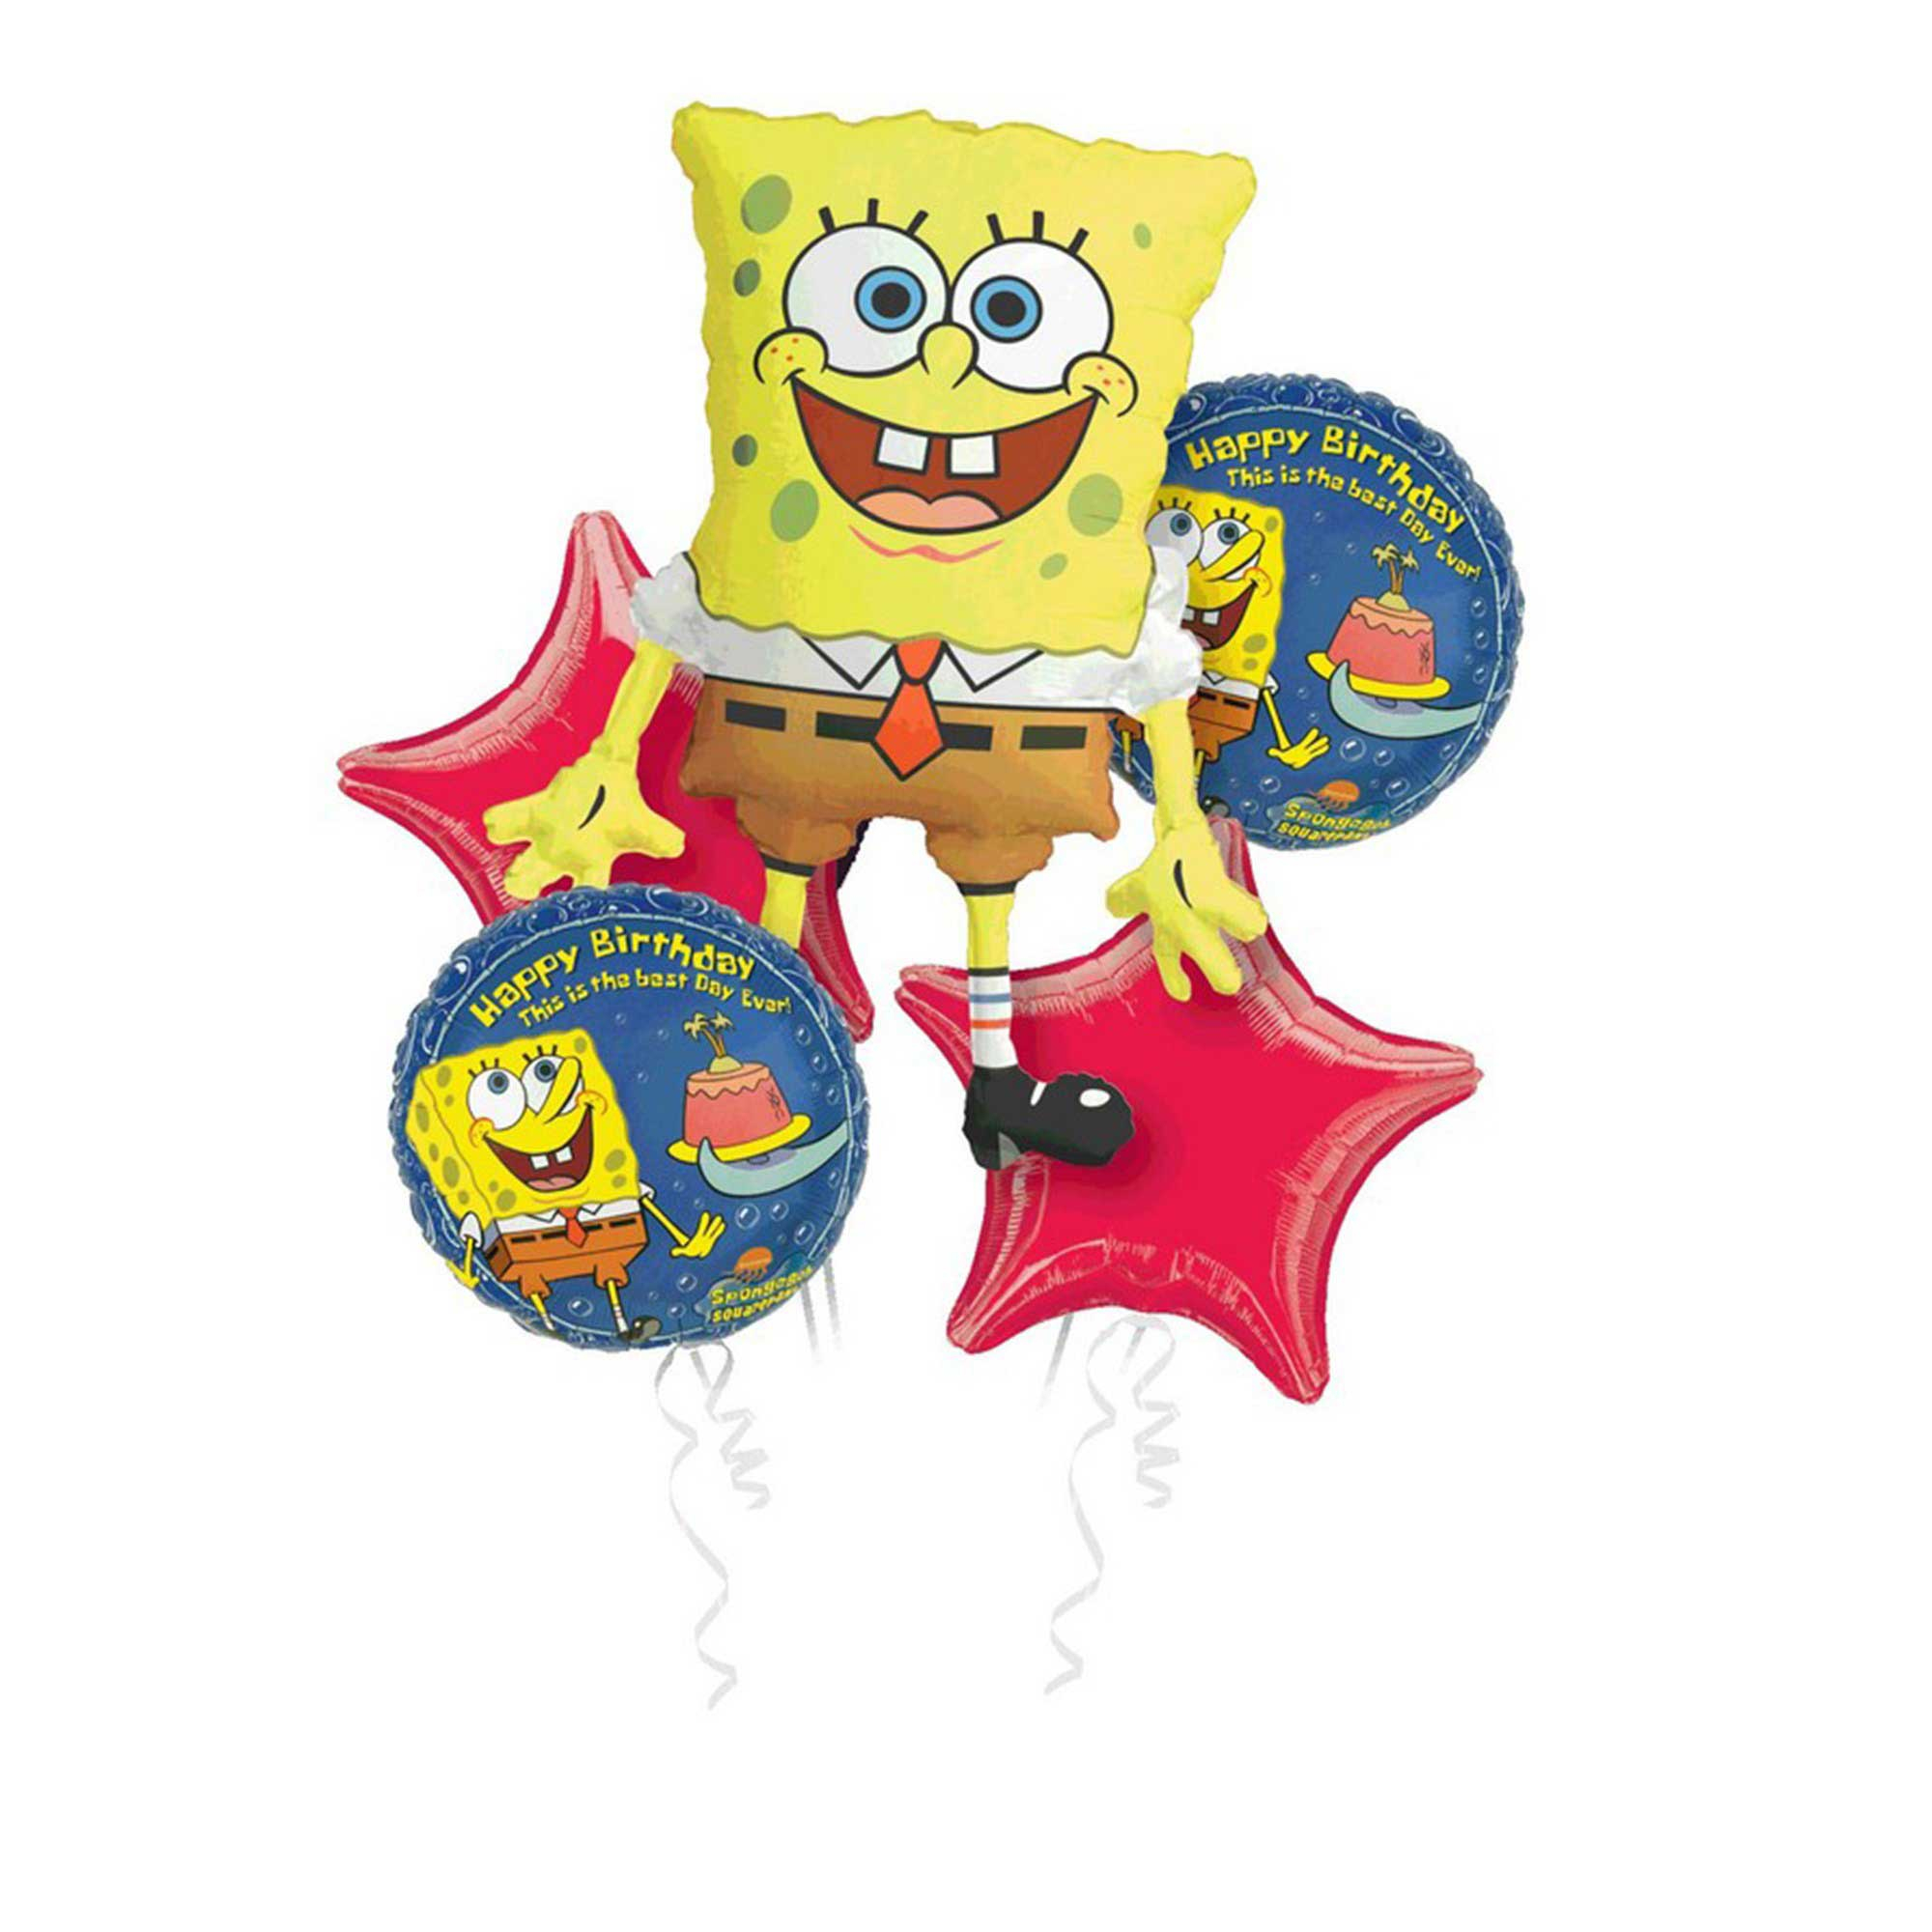 Bouquet Spongebob Birthday P75